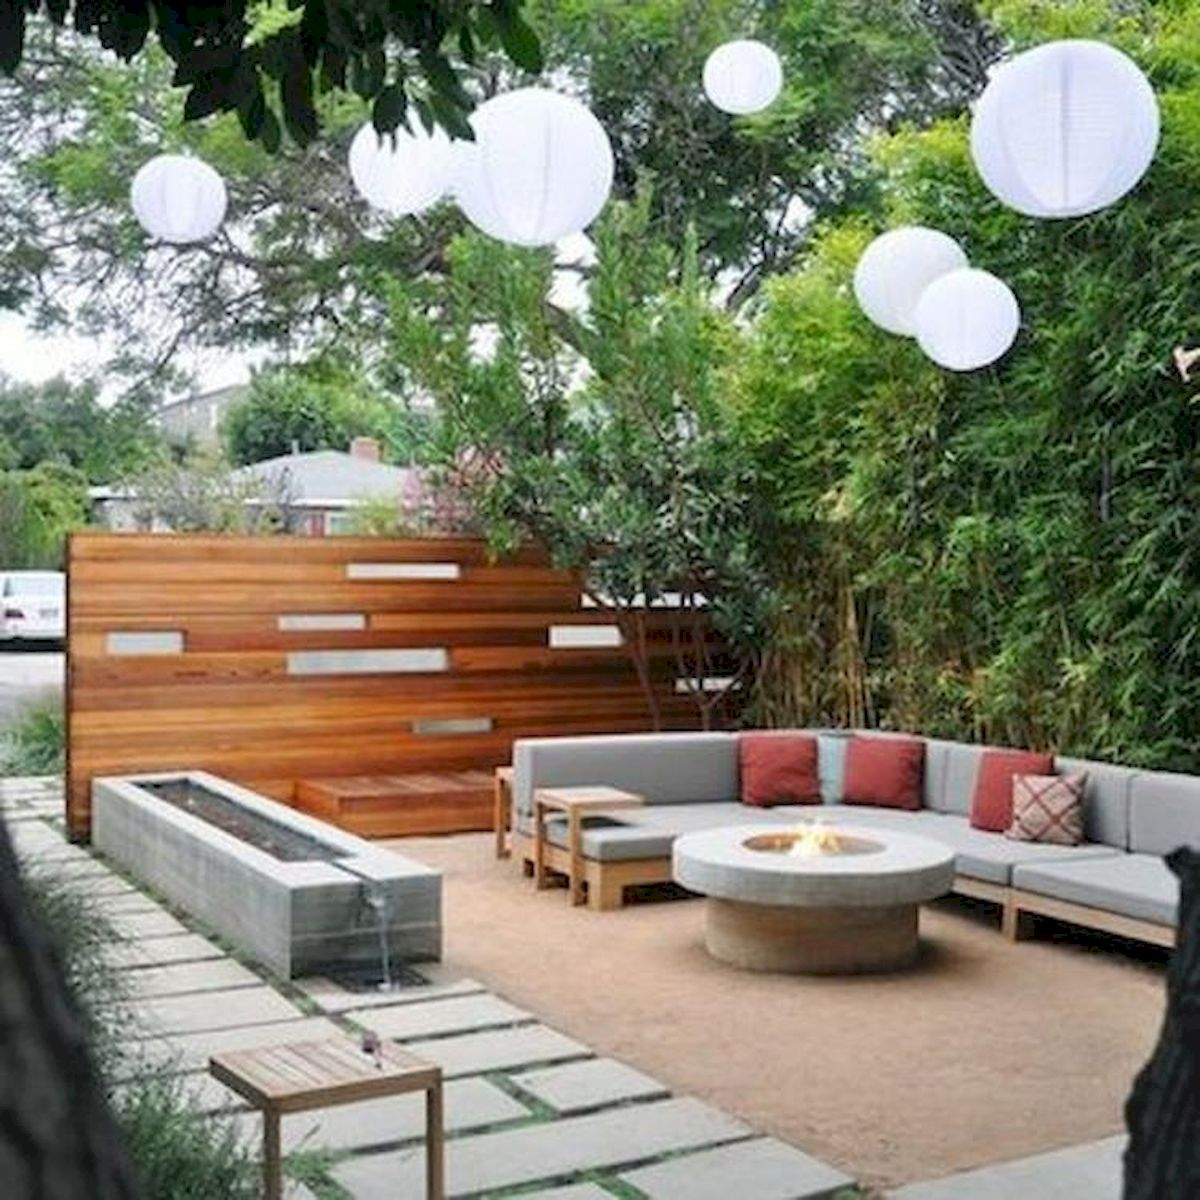 60 Awesome Backyard Privacy Design and Decor Ideas (51)